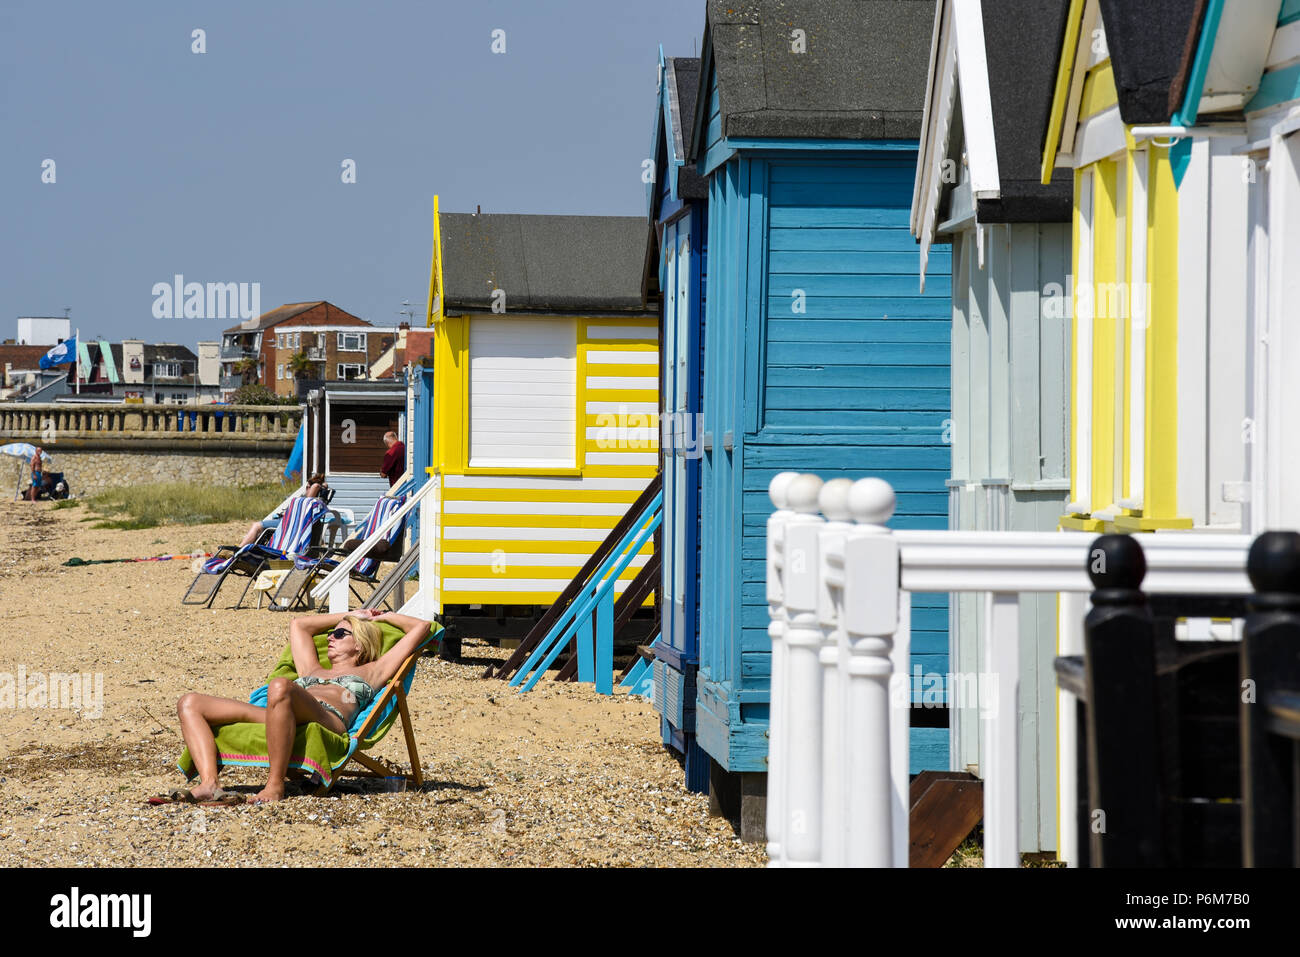 Female sunbather by multi coloured brightly colored beach huts at Southend on Sea, Essex, UK - Stock Image